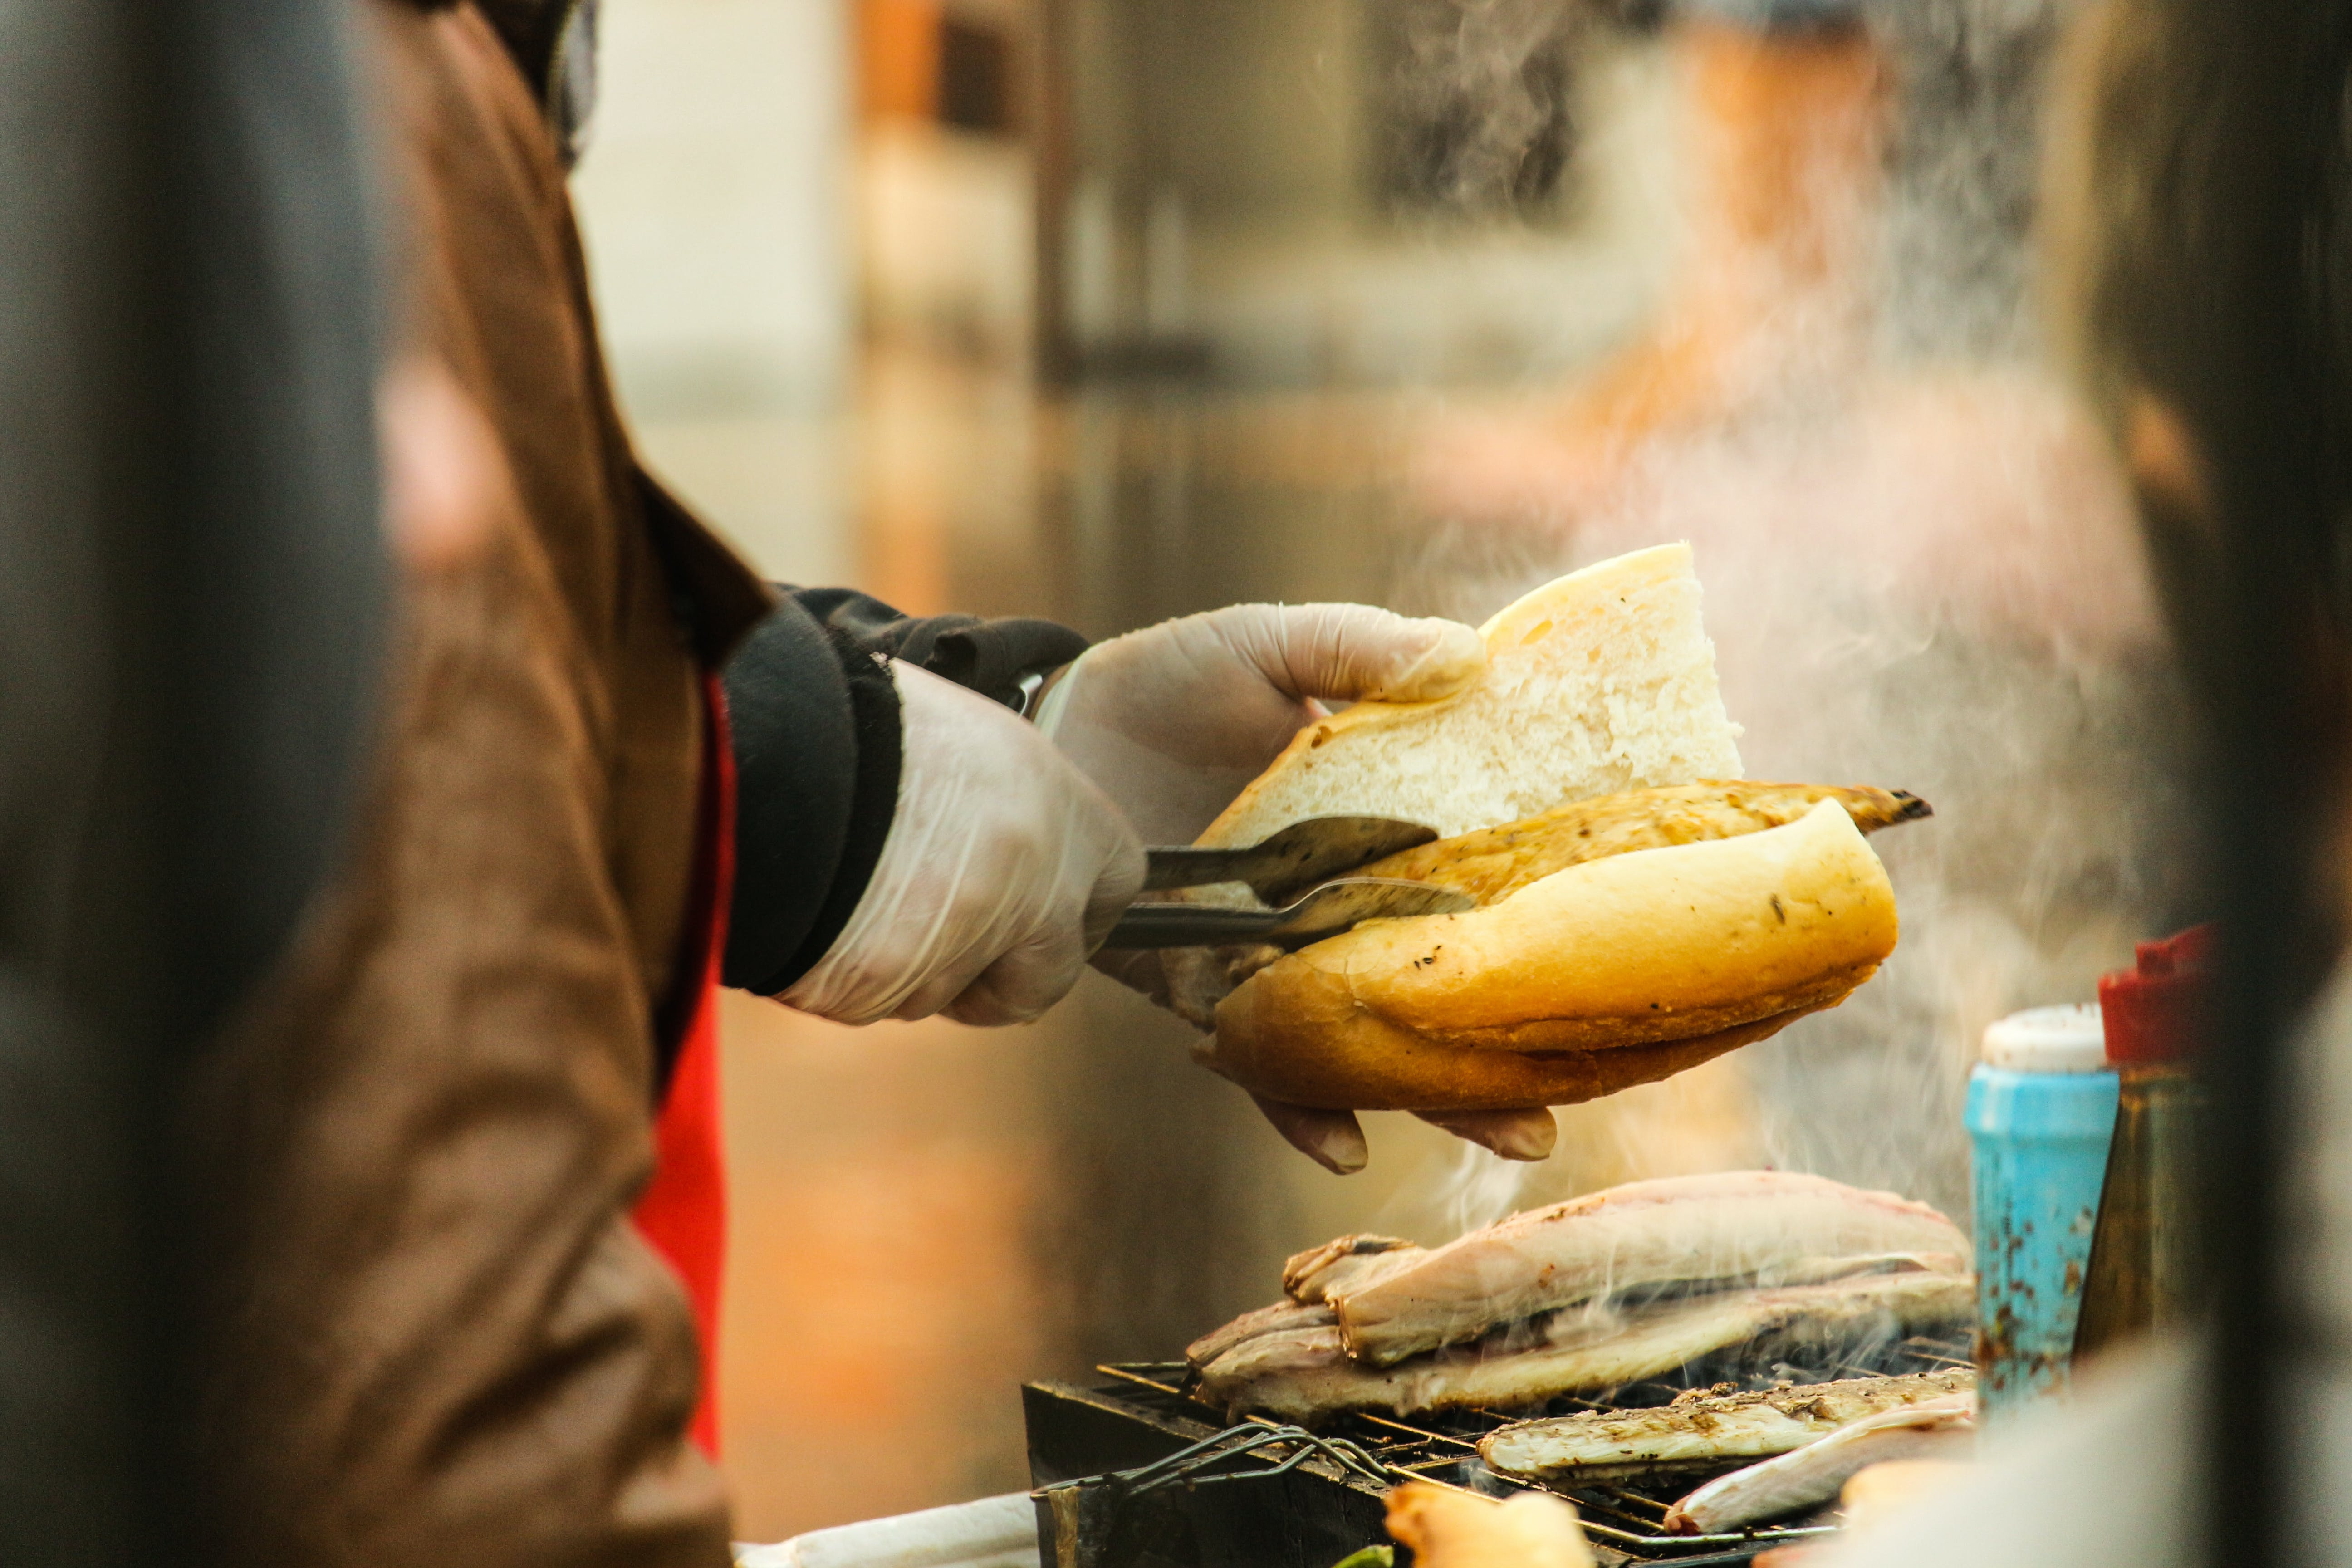 Person Putting Grilled Food in Sliced Bread